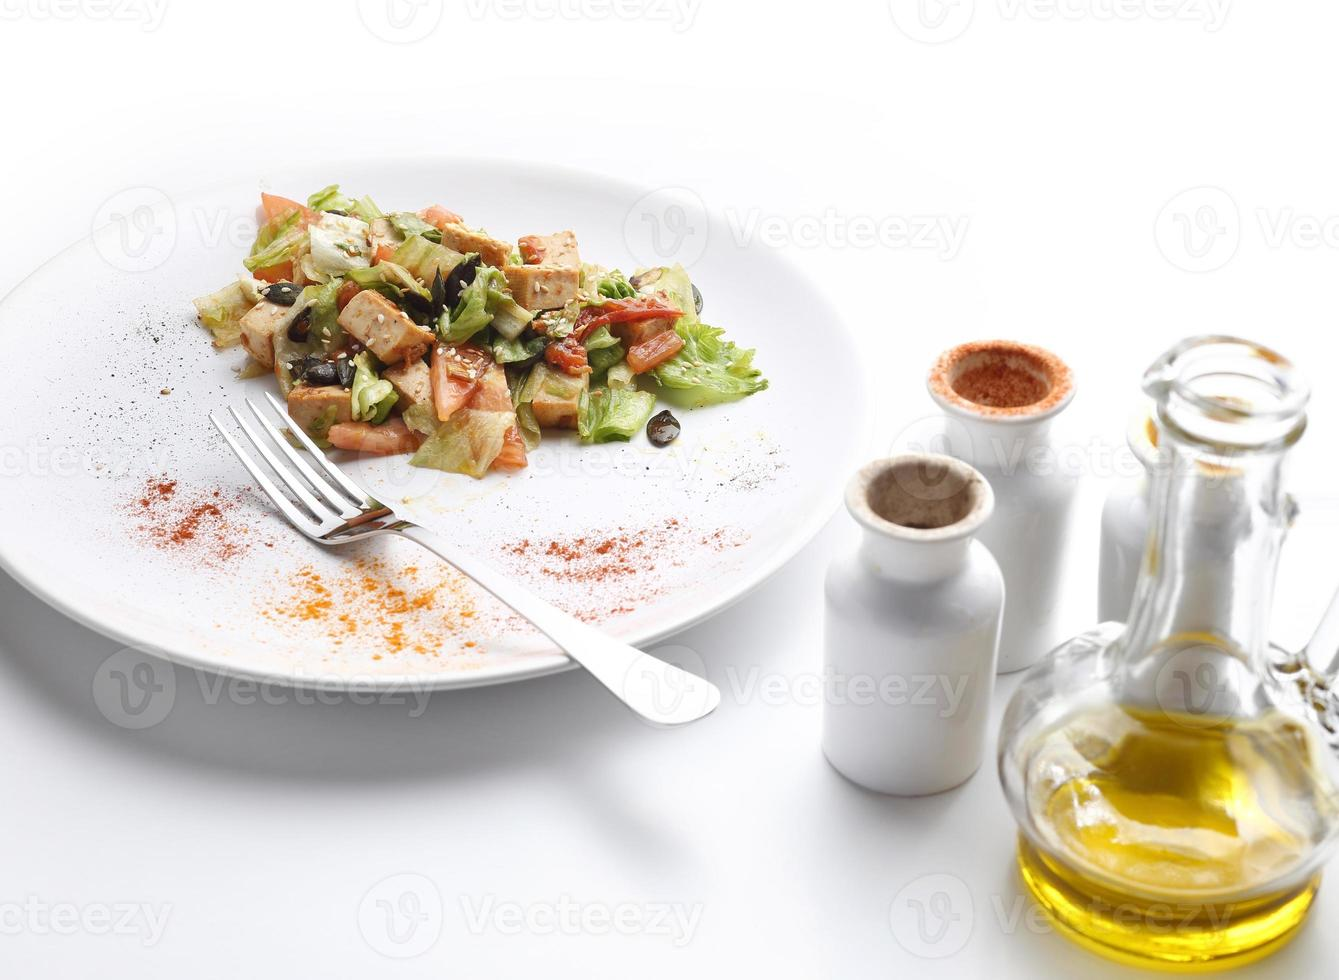 Tofu and vegetables salad. Olive oil and spices. White background photo